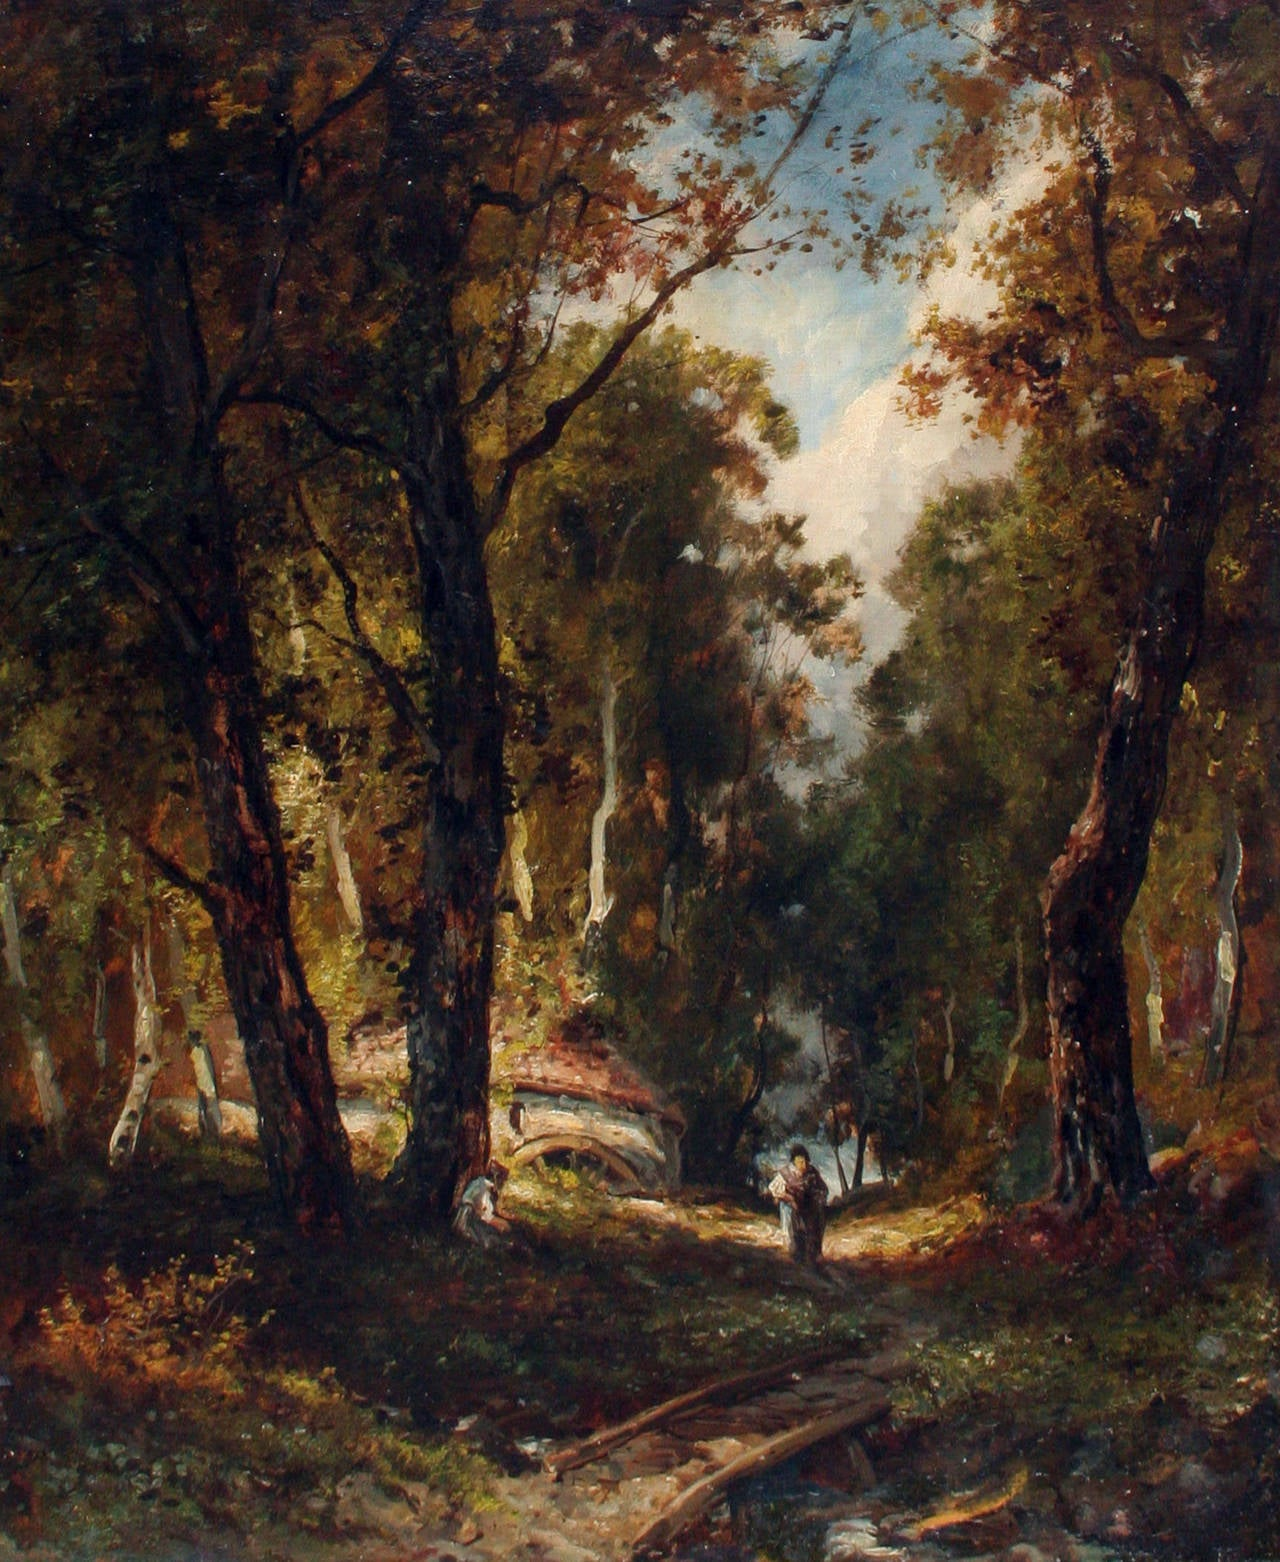 Barbizon Foret de Chantilly: after Narcissus Diaz de la Pena   - Painting by Unknown